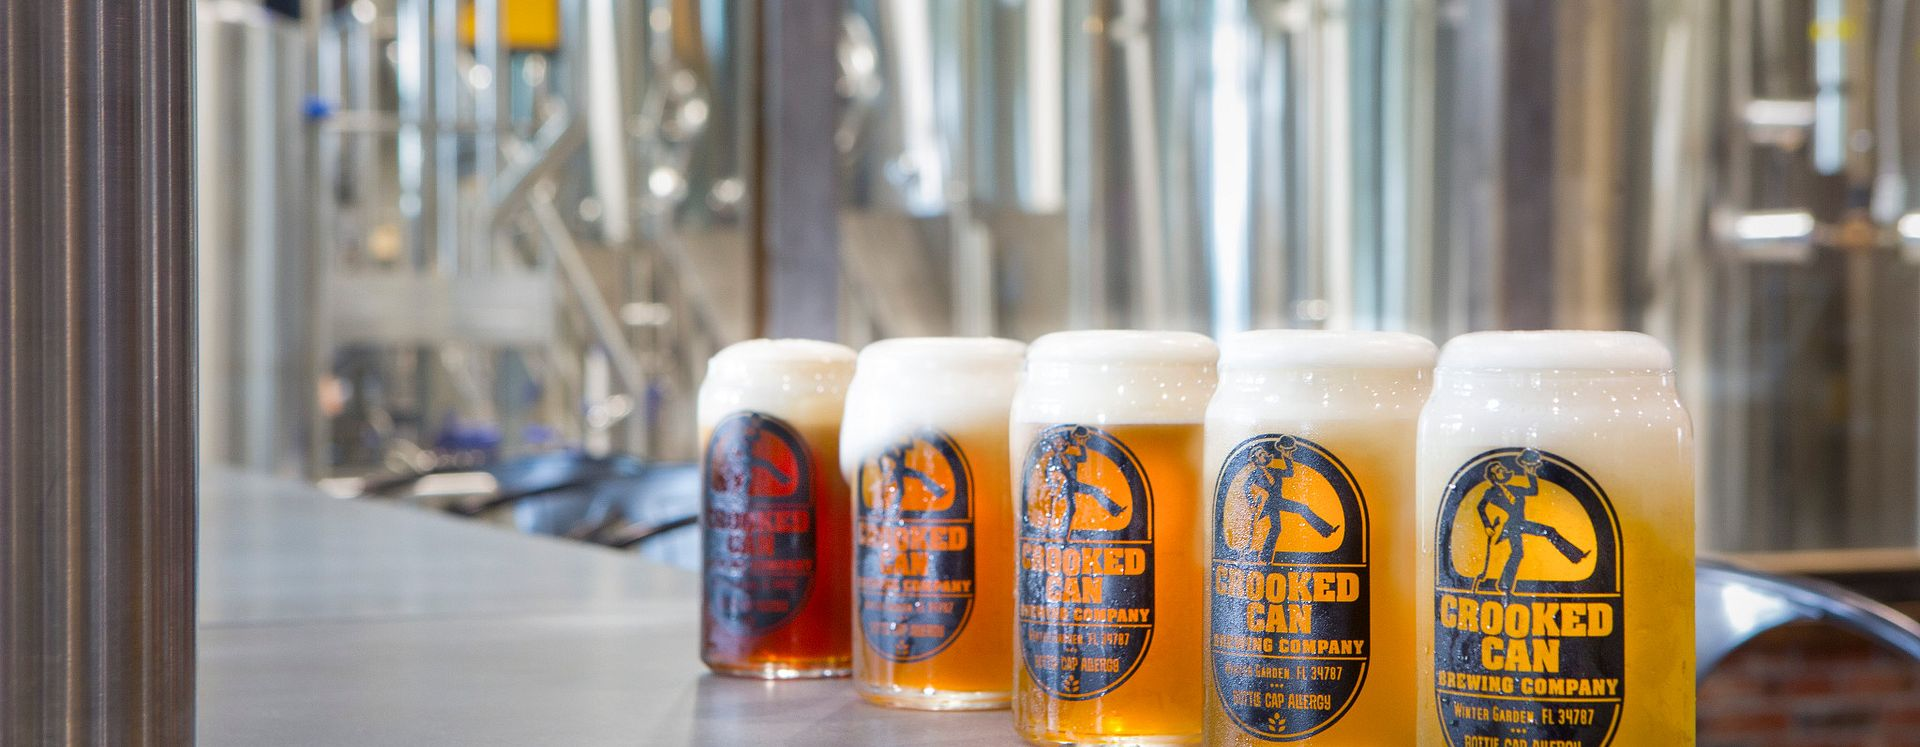 Five beers on the bar of Crooked Can Brewery